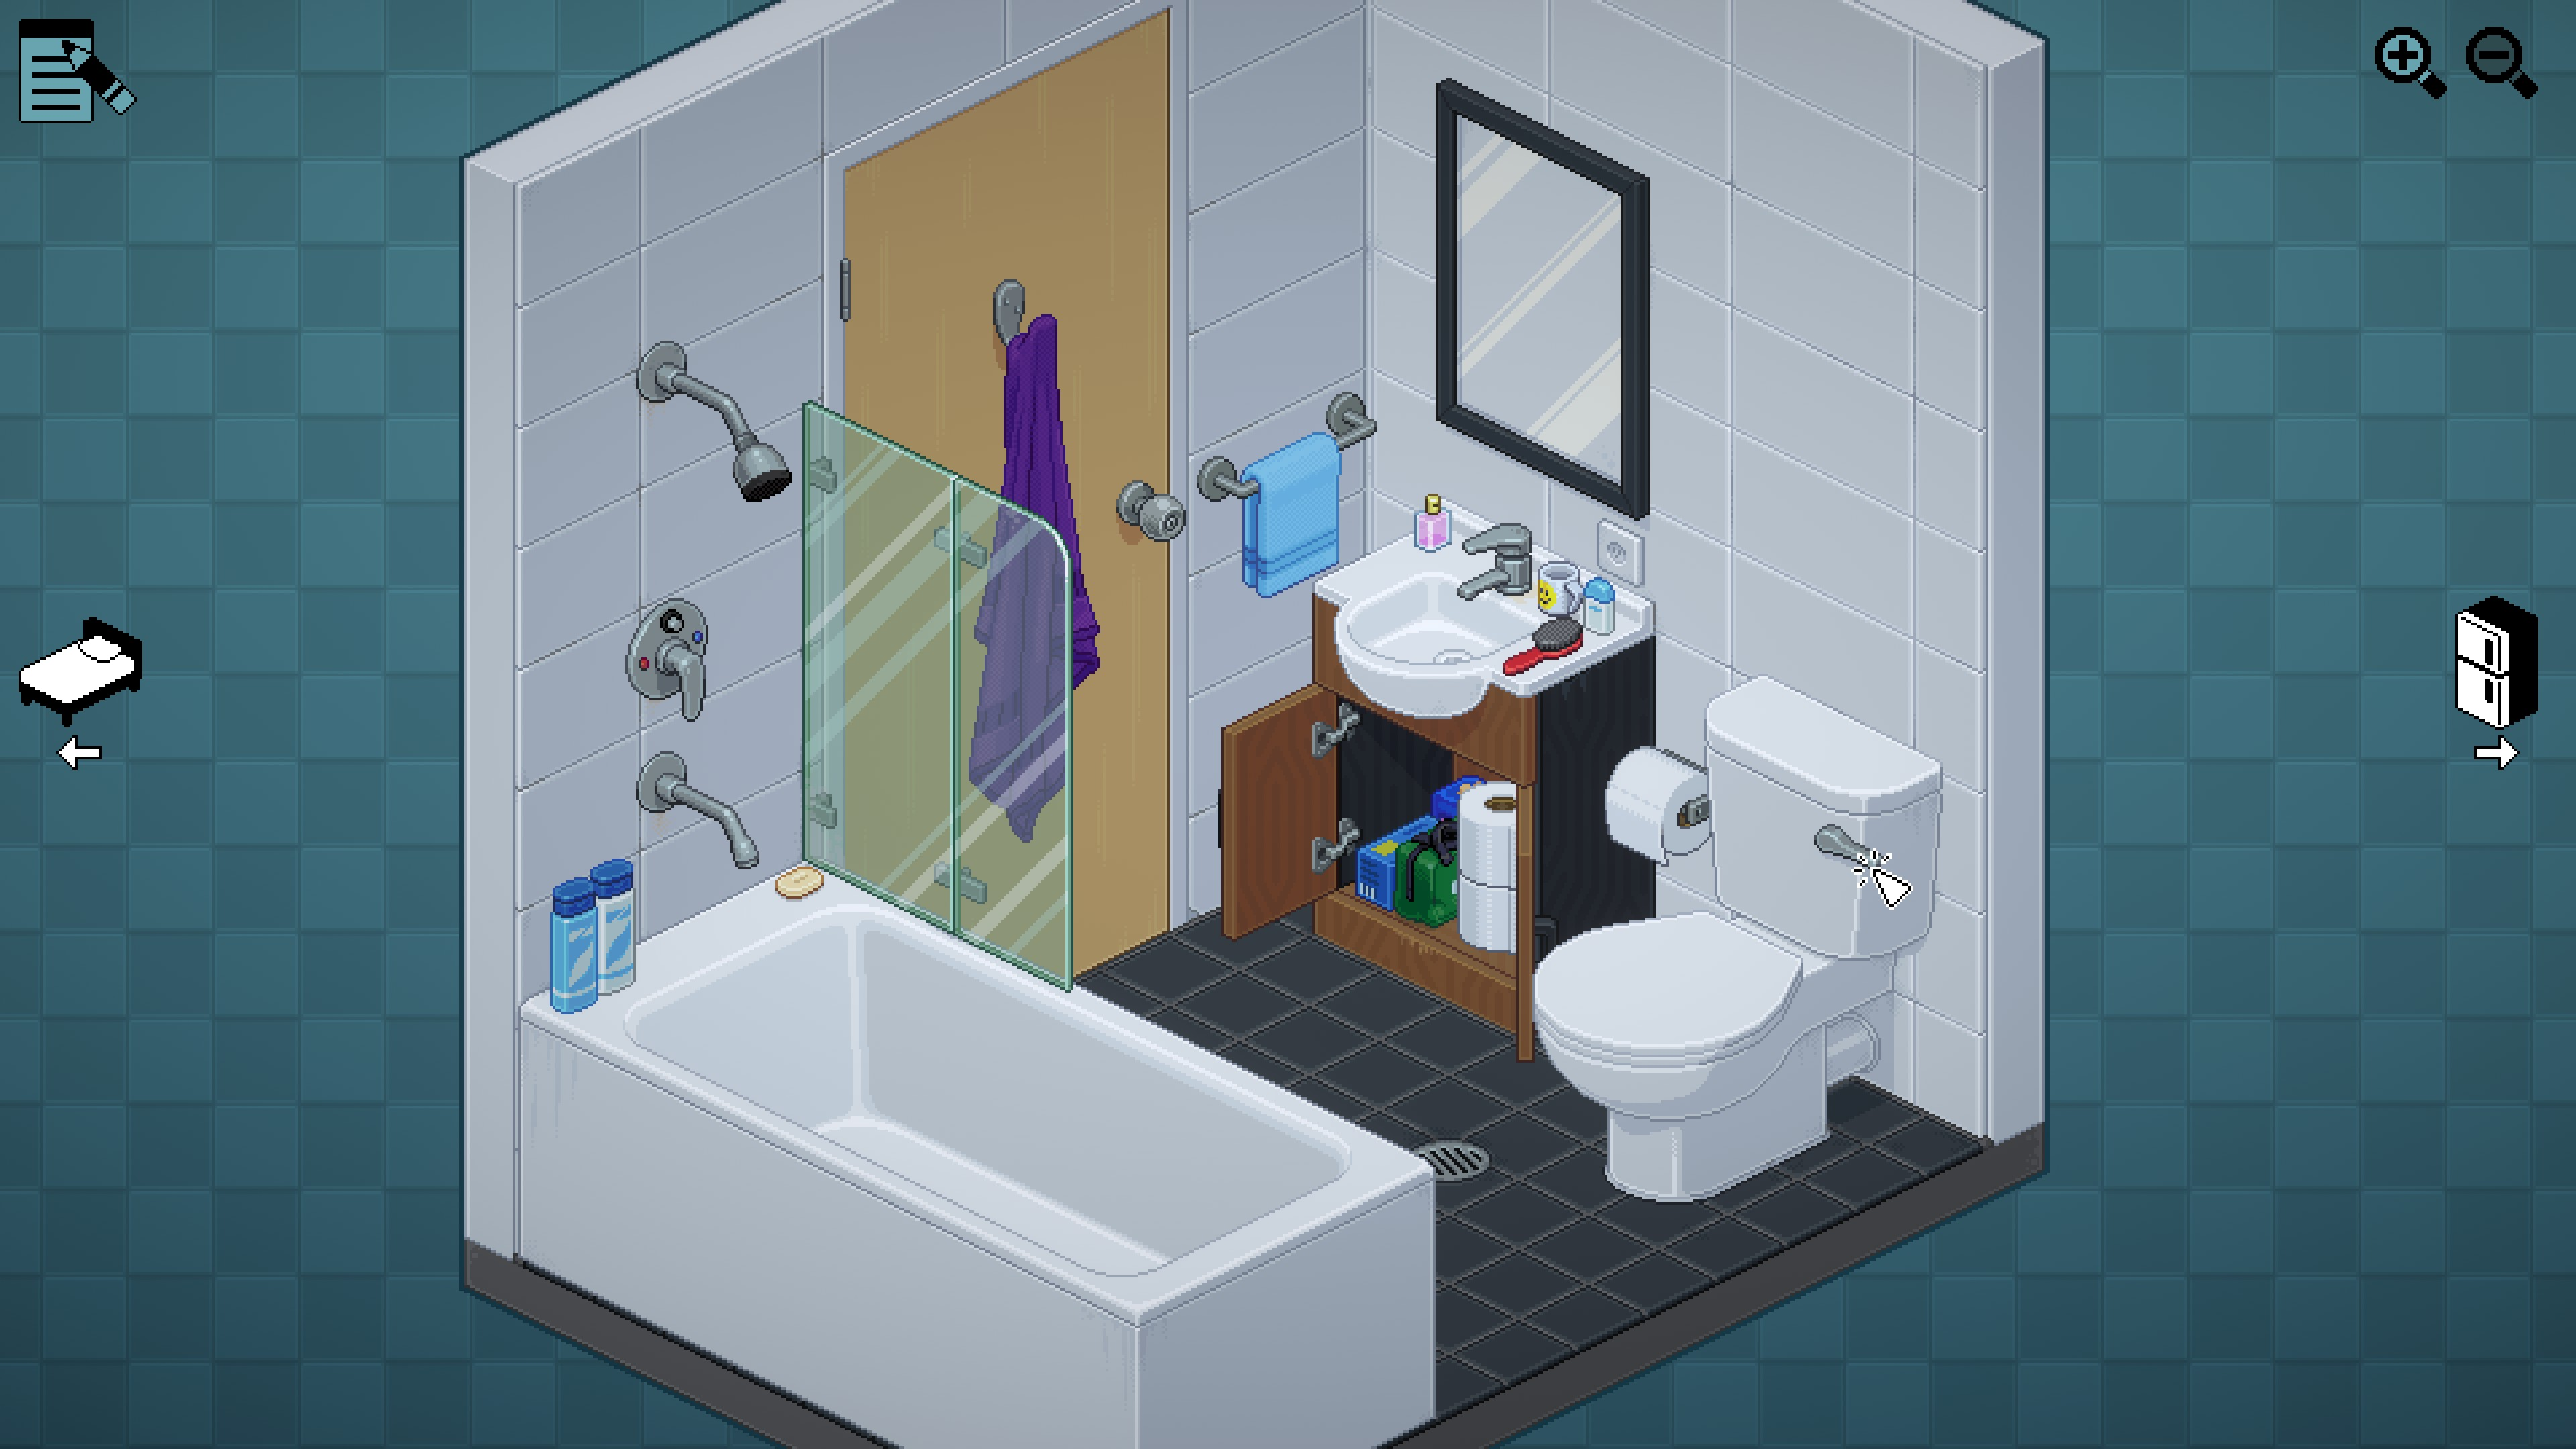 Unpacking. Small bathroom with a cluttered sink